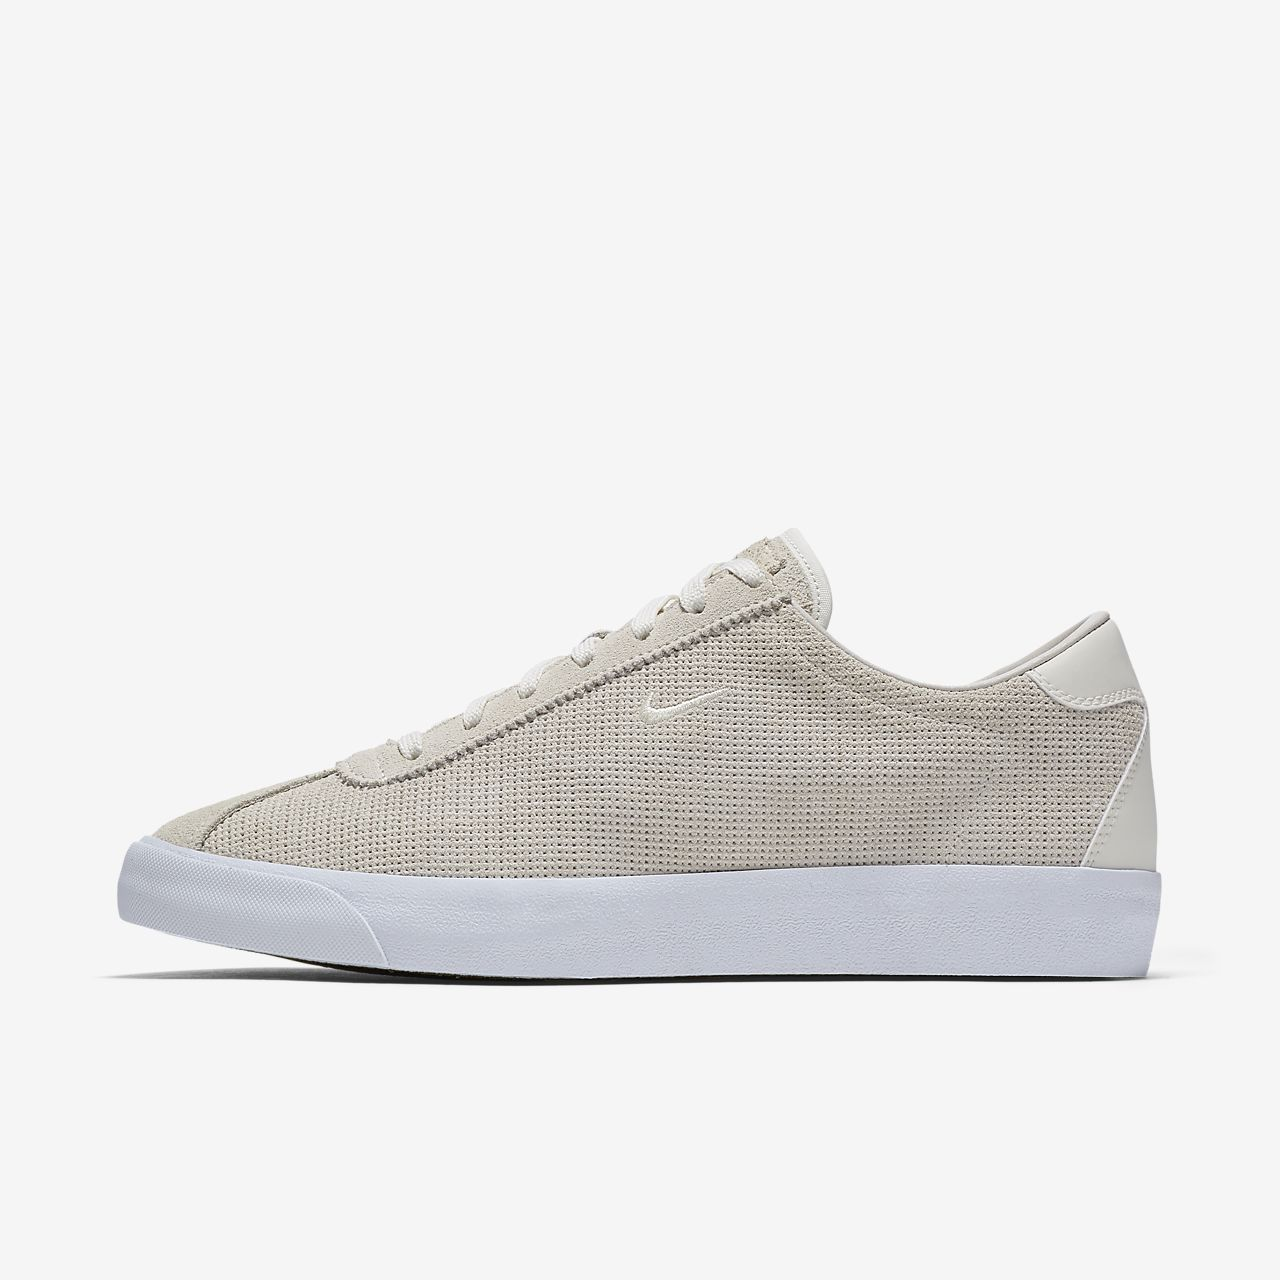 Nike Homme Pour Classic Chaussure Suede Ca Match fTx77zUd